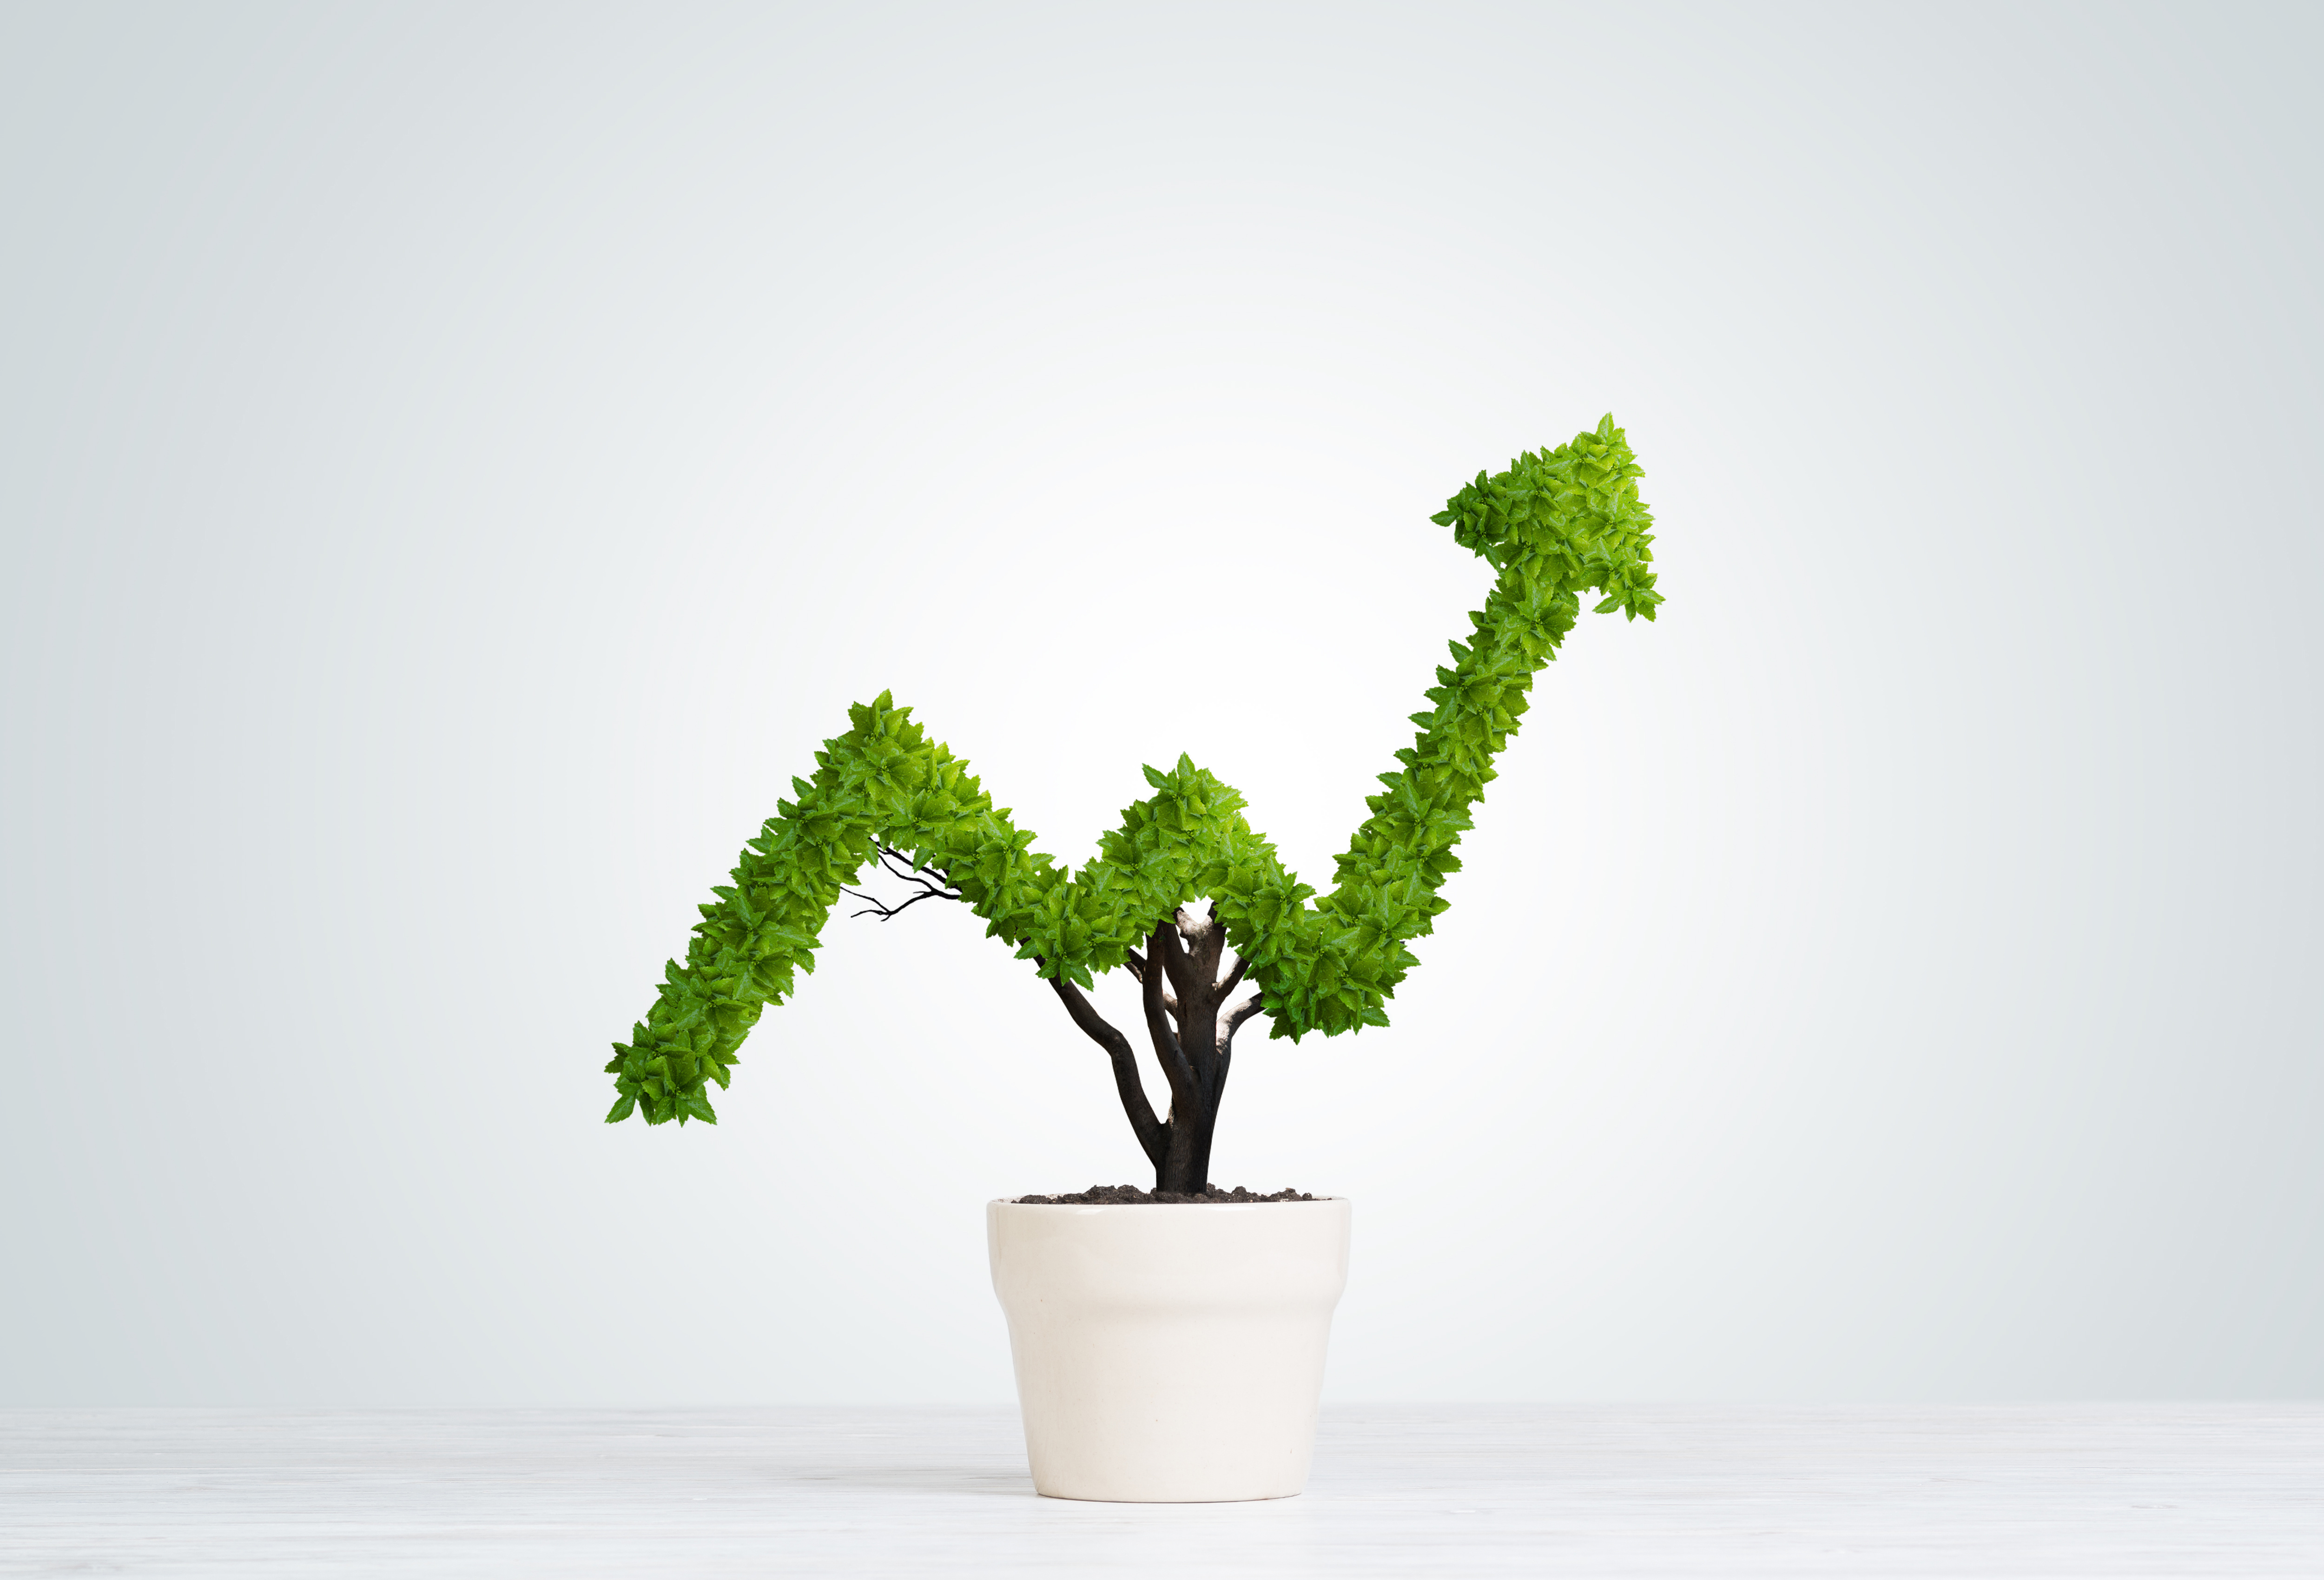 Small tree growing in the shape of a positive investment arrow.